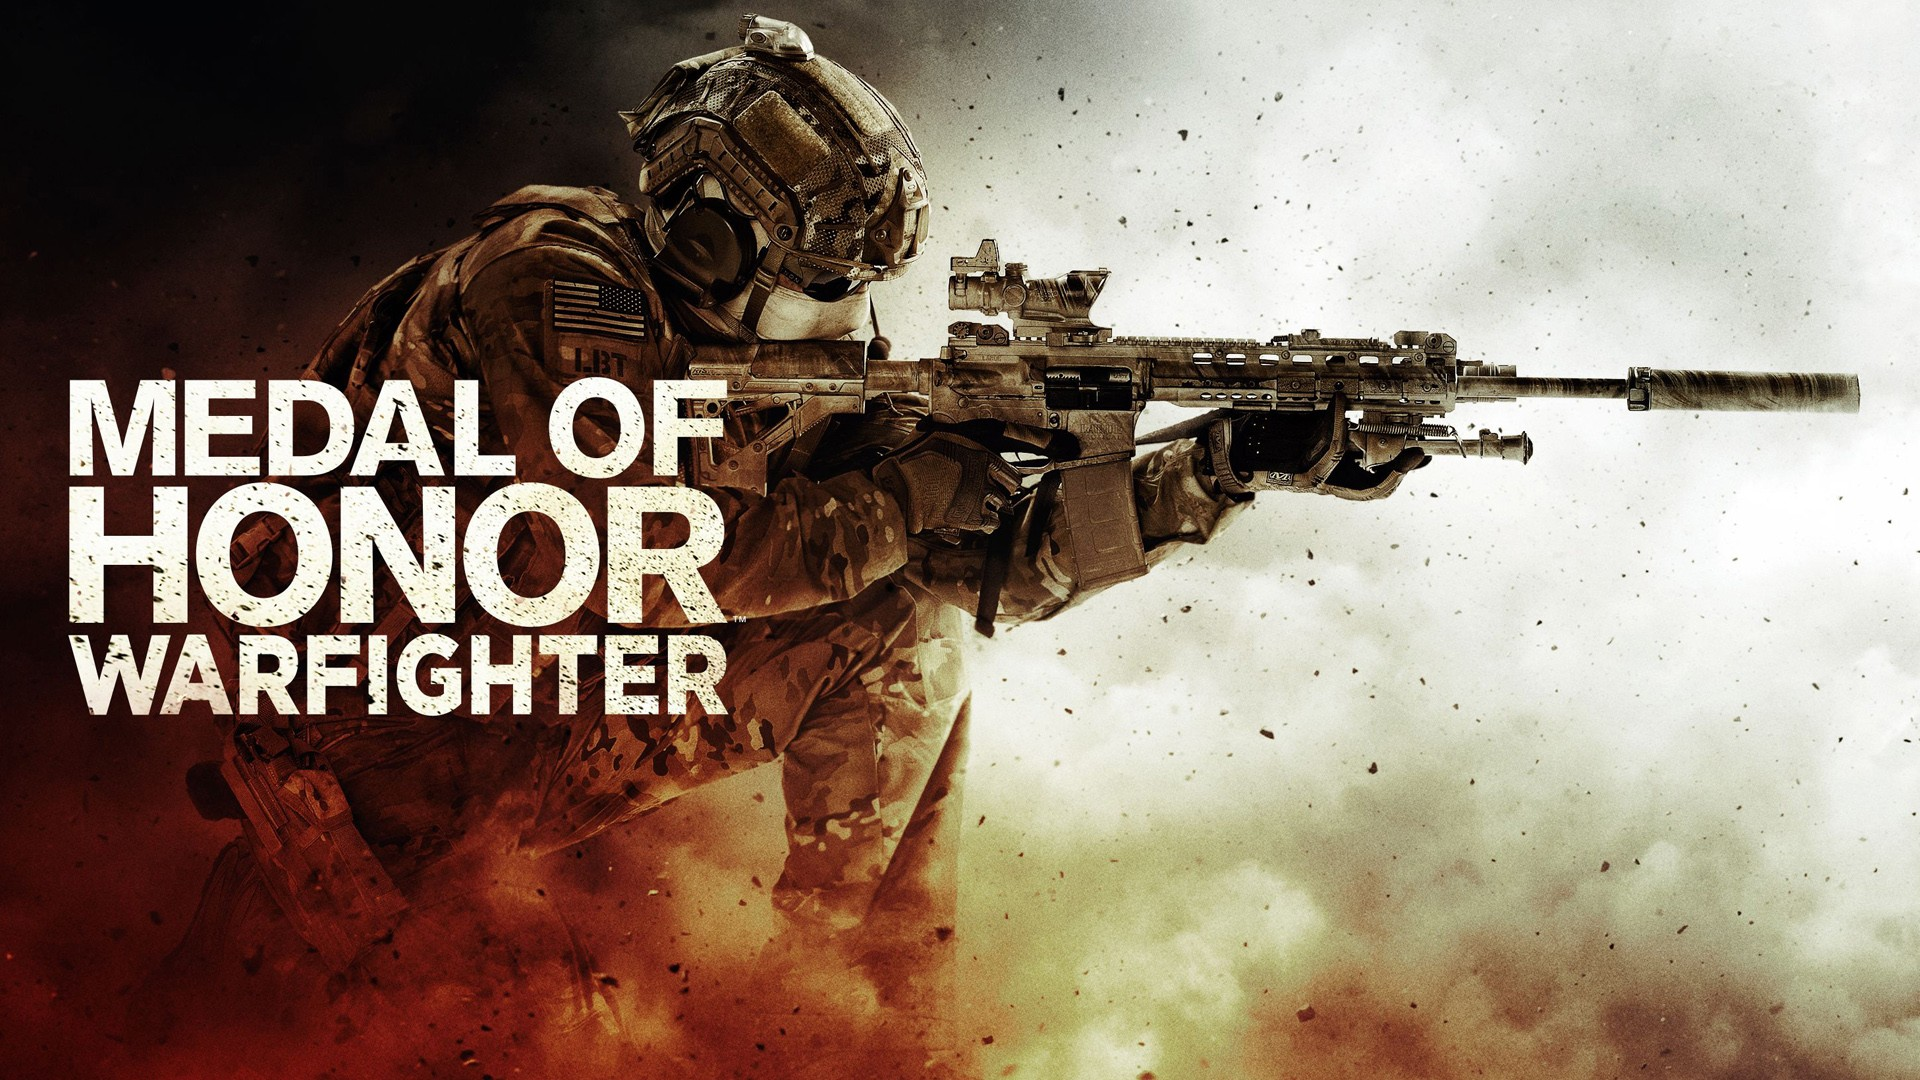 Ipad Air 2 Cute Wallpaper Medal Of Honor Warfighter Game Wallpapers Hd Wallpapers